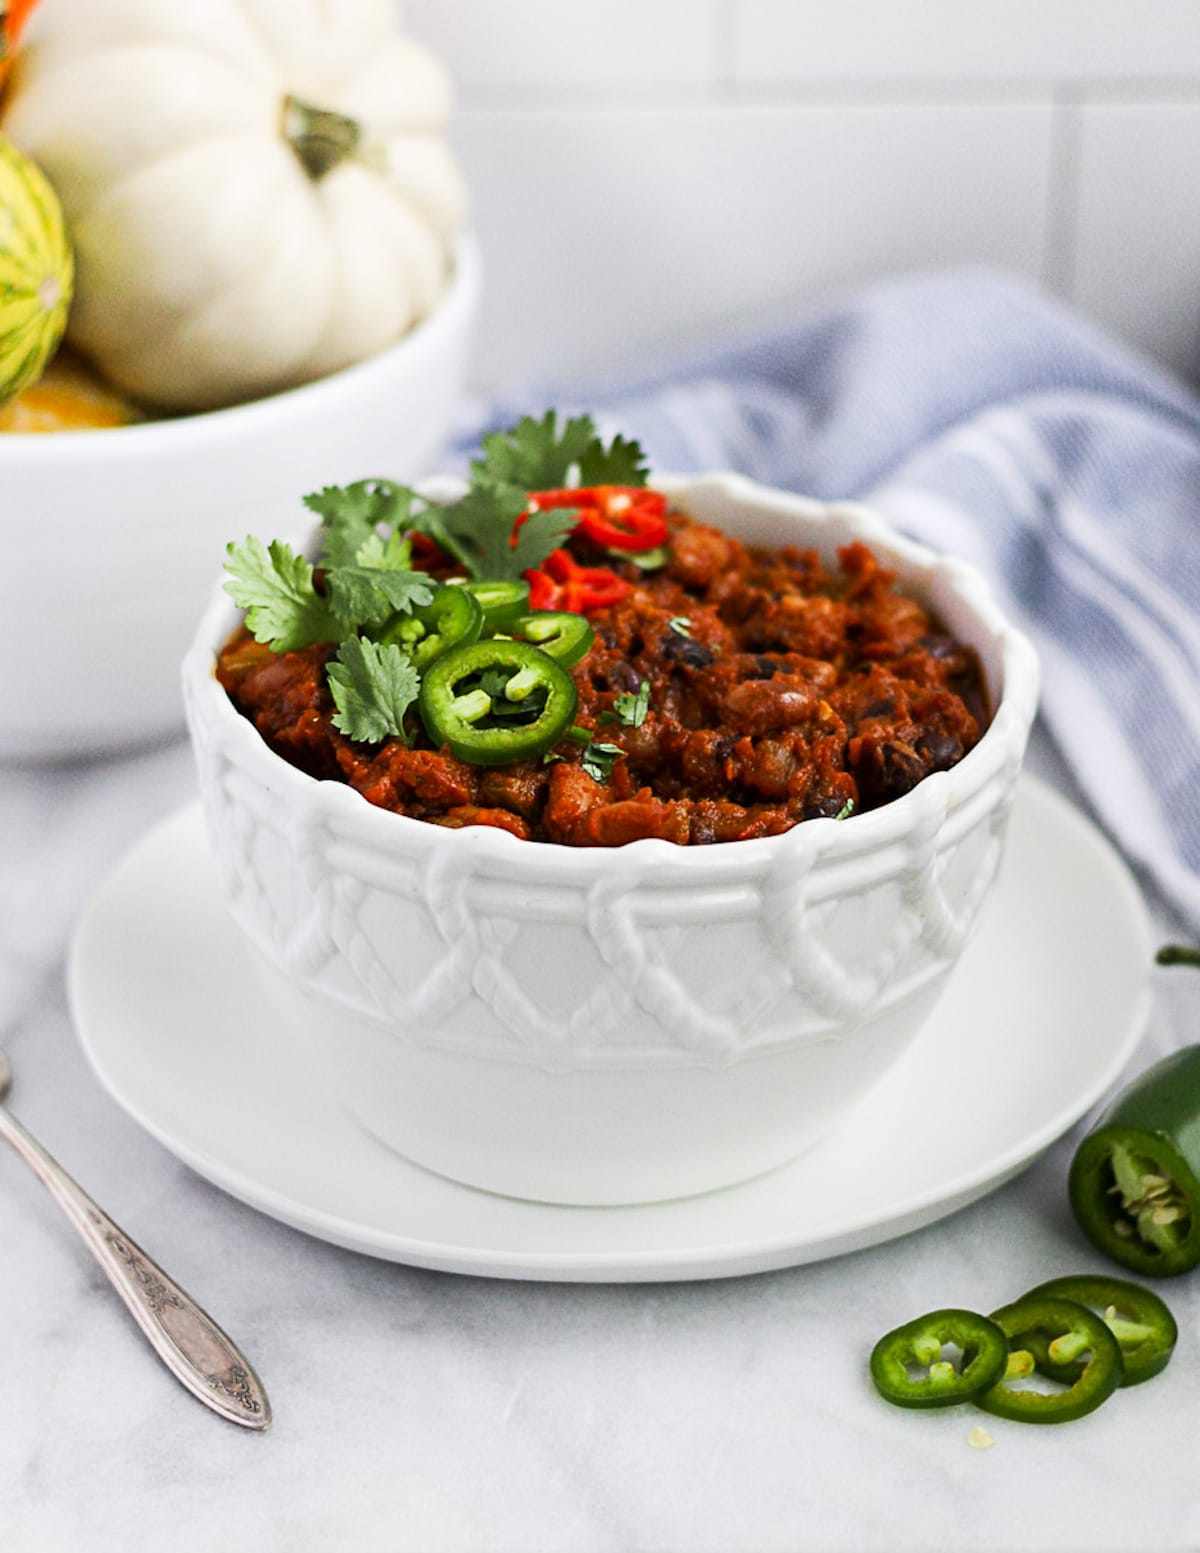 A large white bowl filled with vegan chili. There are peppers and cilantro on top. The background has a blue and white striped cloth, a white bowl filled with pumpkins, a sliced pepper, and a spoon.